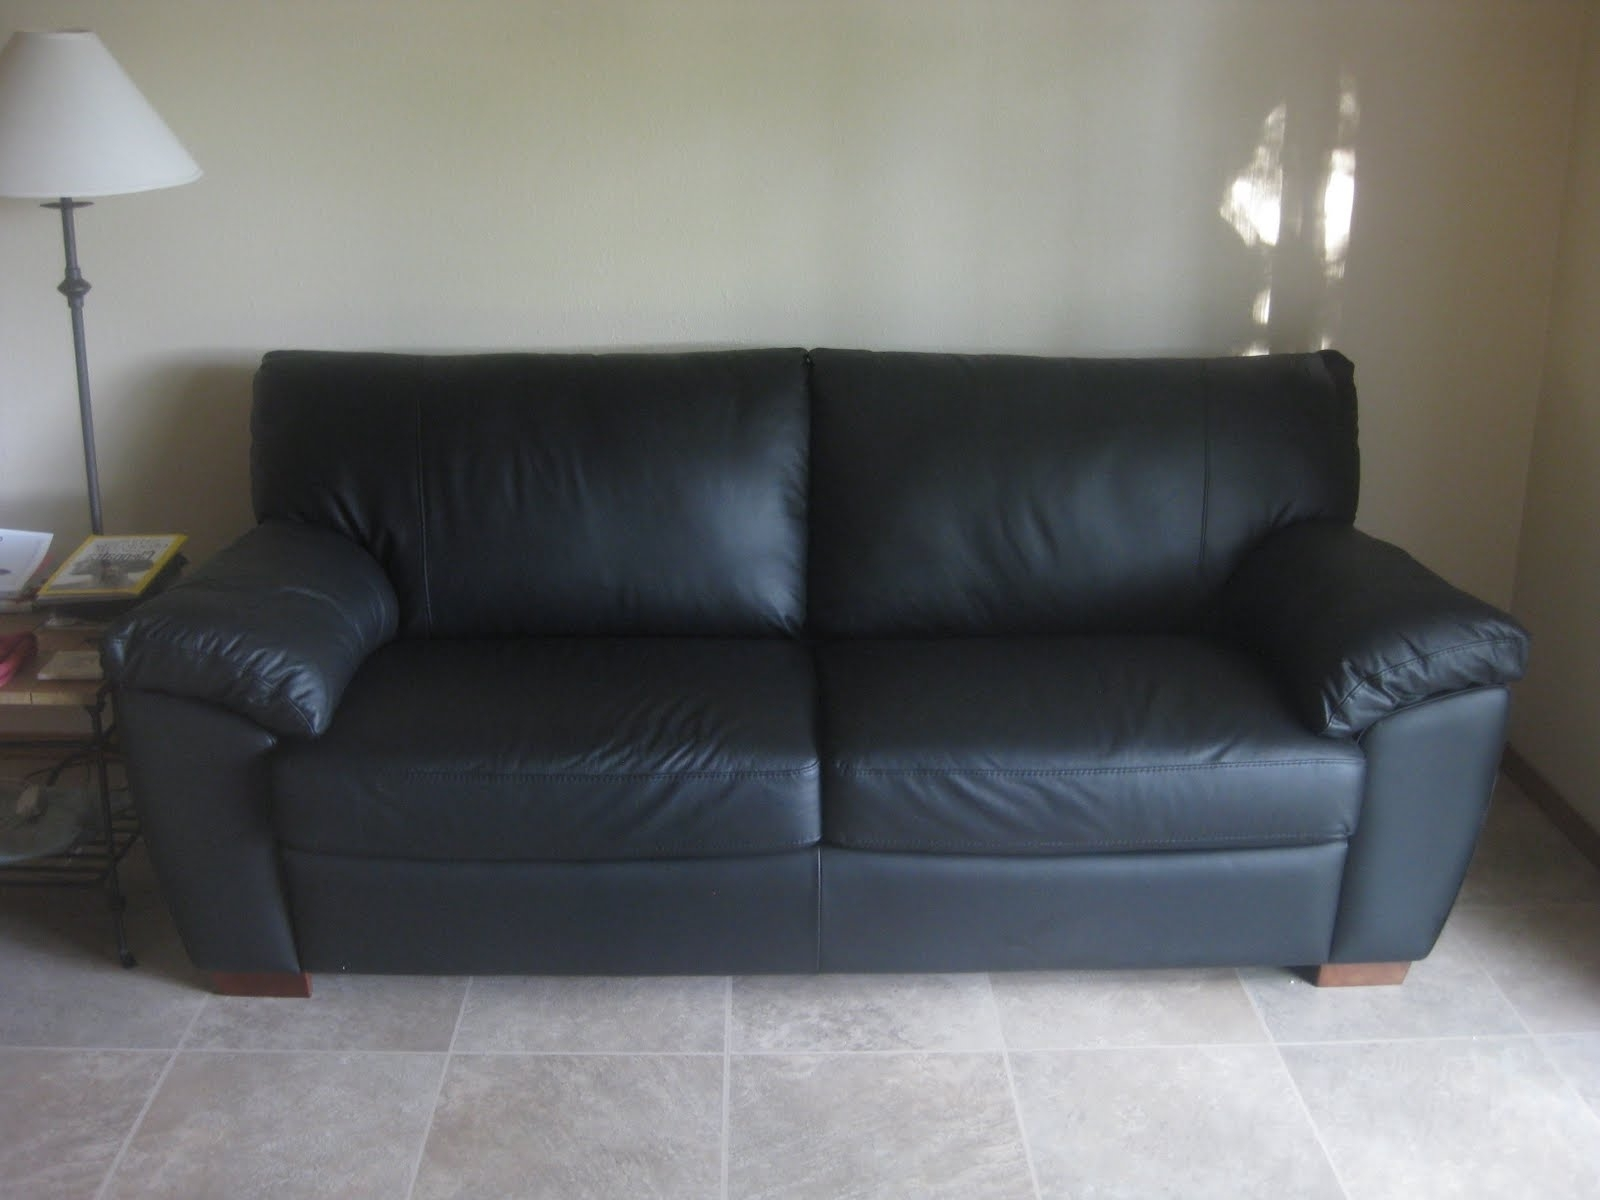 Widely Used Cheap Black Sofas With Unique Curved Black Leather Sofa Cool Couch Cover Ideas W (View 14 of 15)